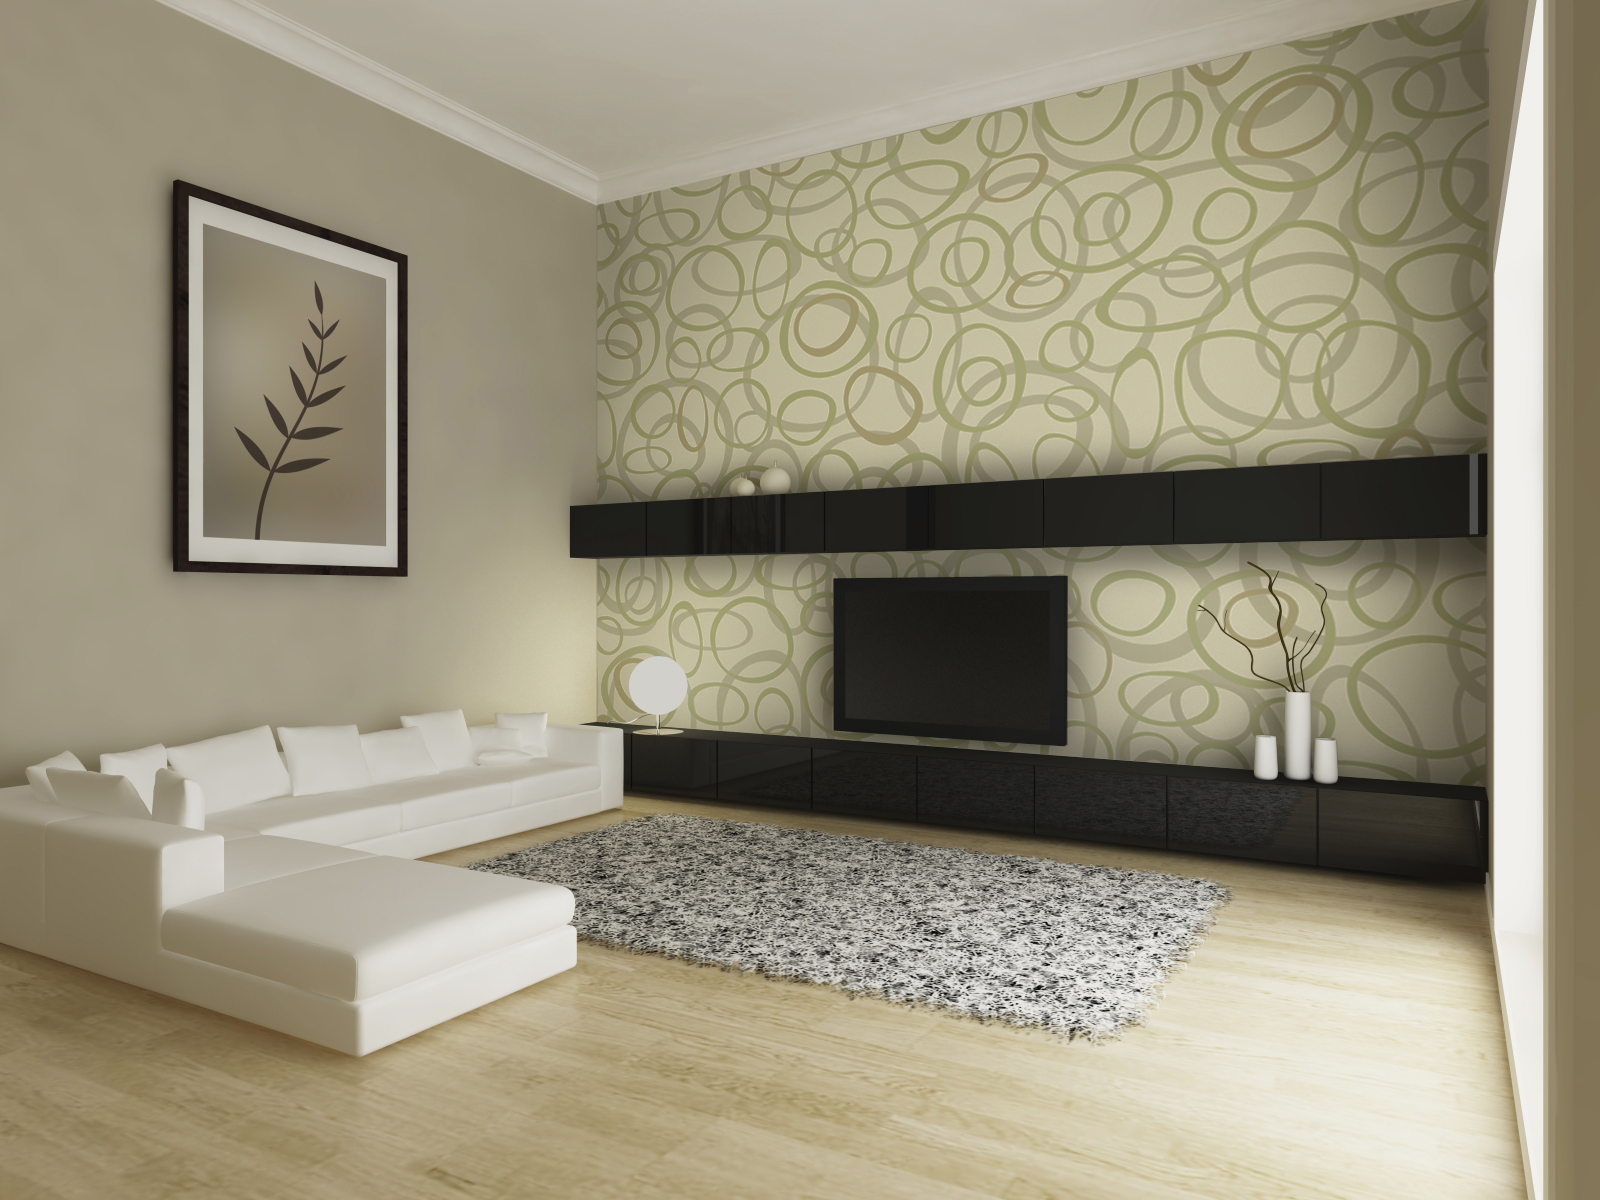 Interior design wallpapers movie hd wallpapers for Interior decoration pics hd